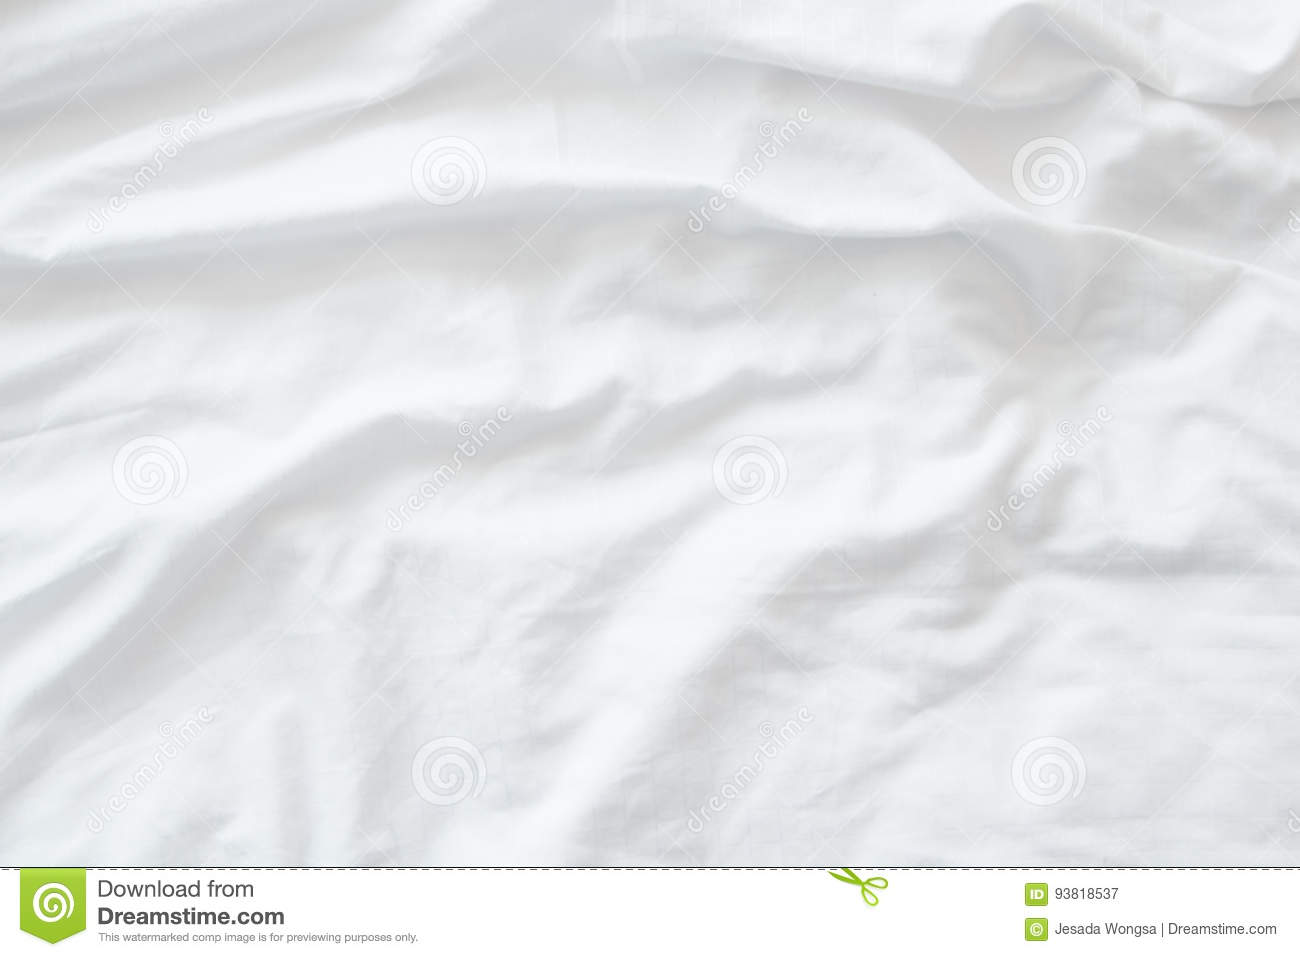 Fabric For Bedding white bedding sheets or white fabric wrinkle texture background